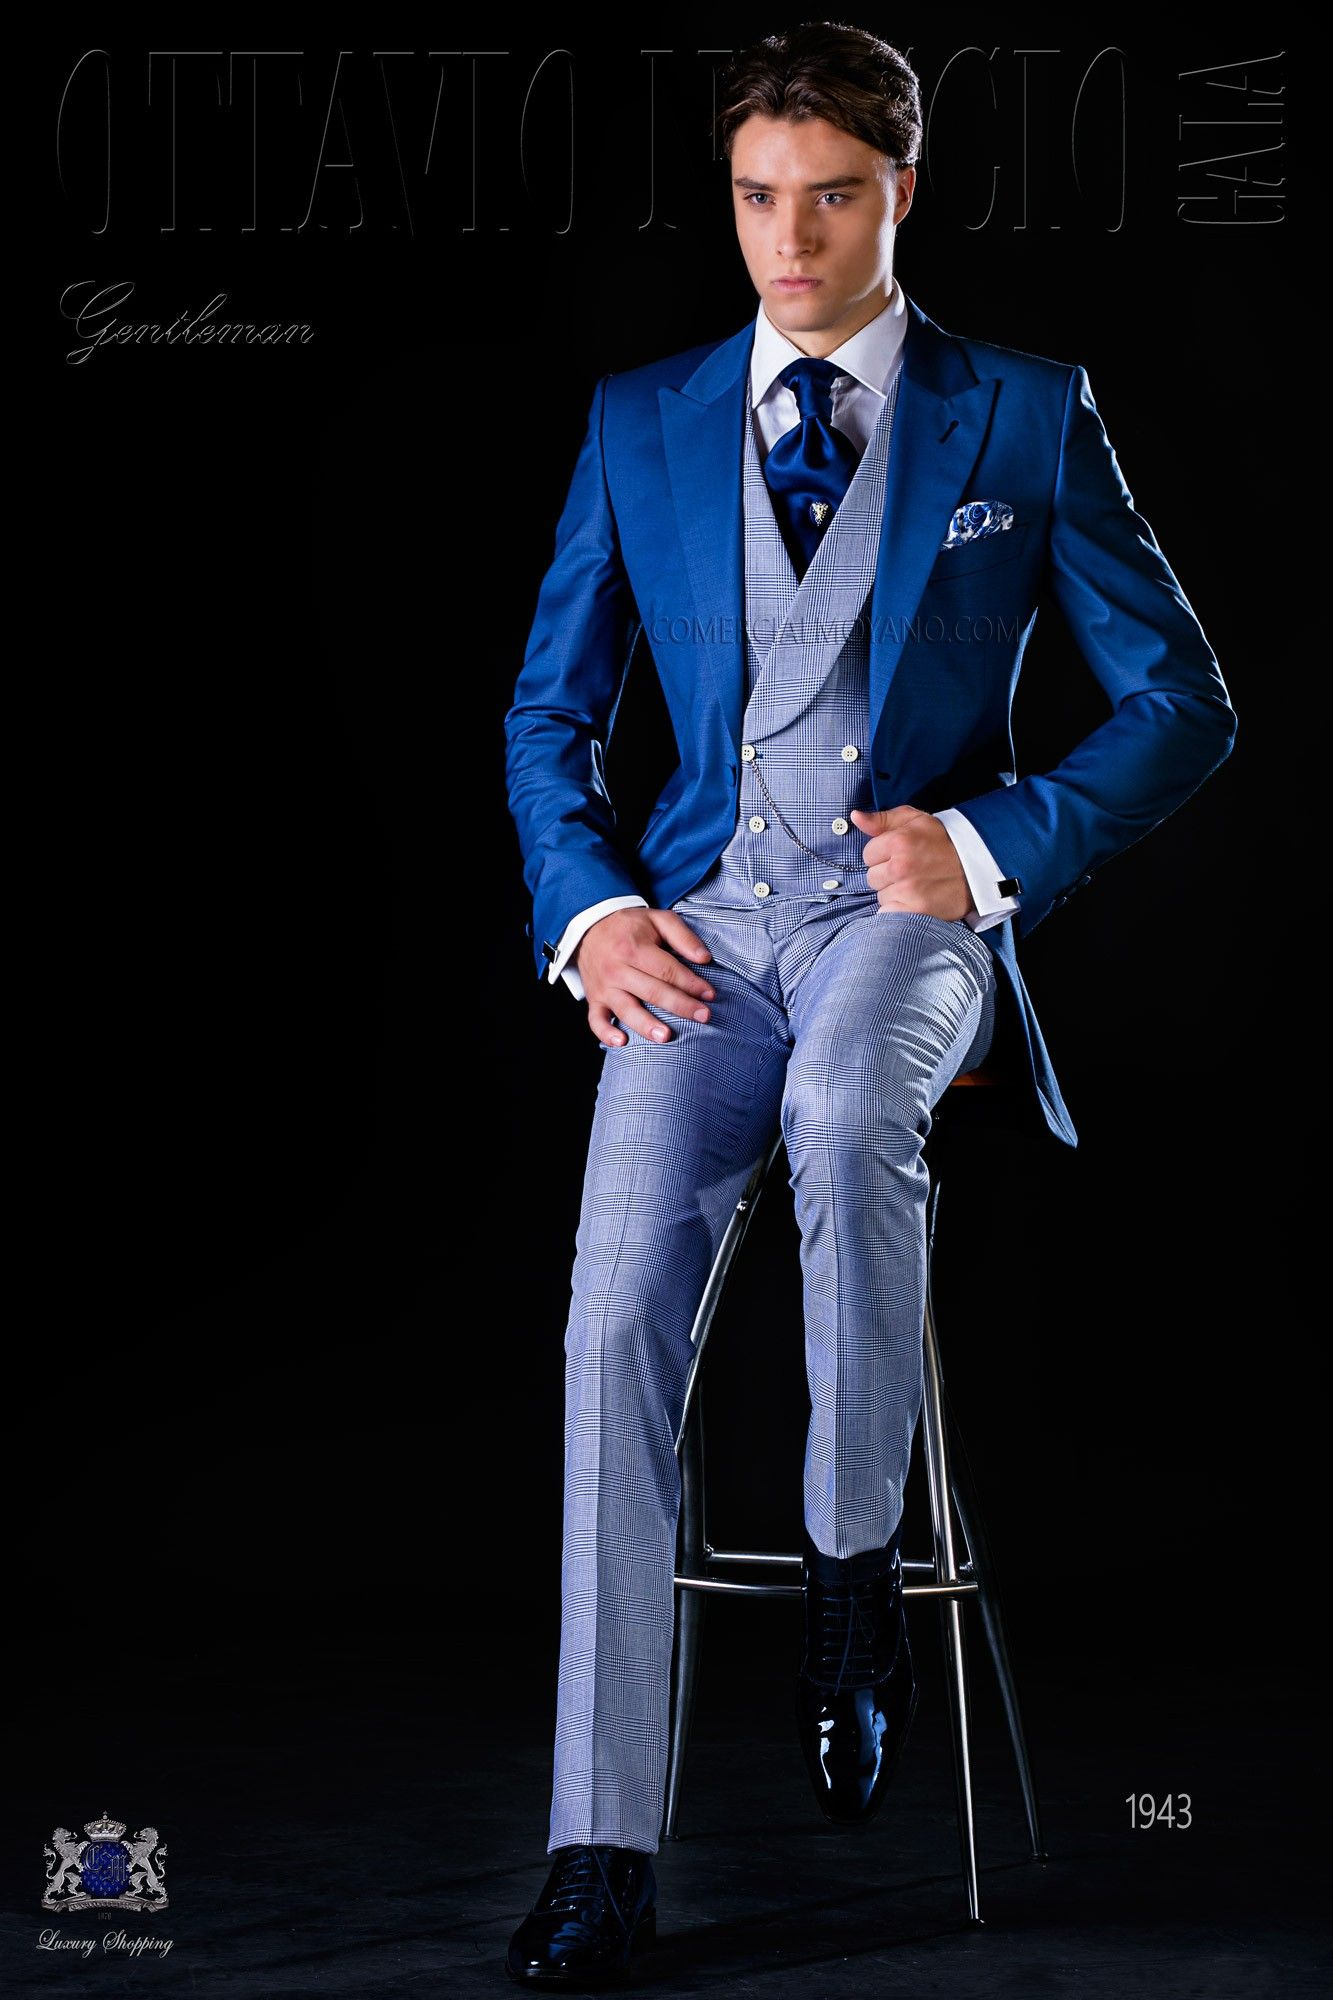 costume de mariage bleu avec prince of wales pantalons costumes pinterest costume. Black Bedroom Furniture Sets. Home Design Ideas